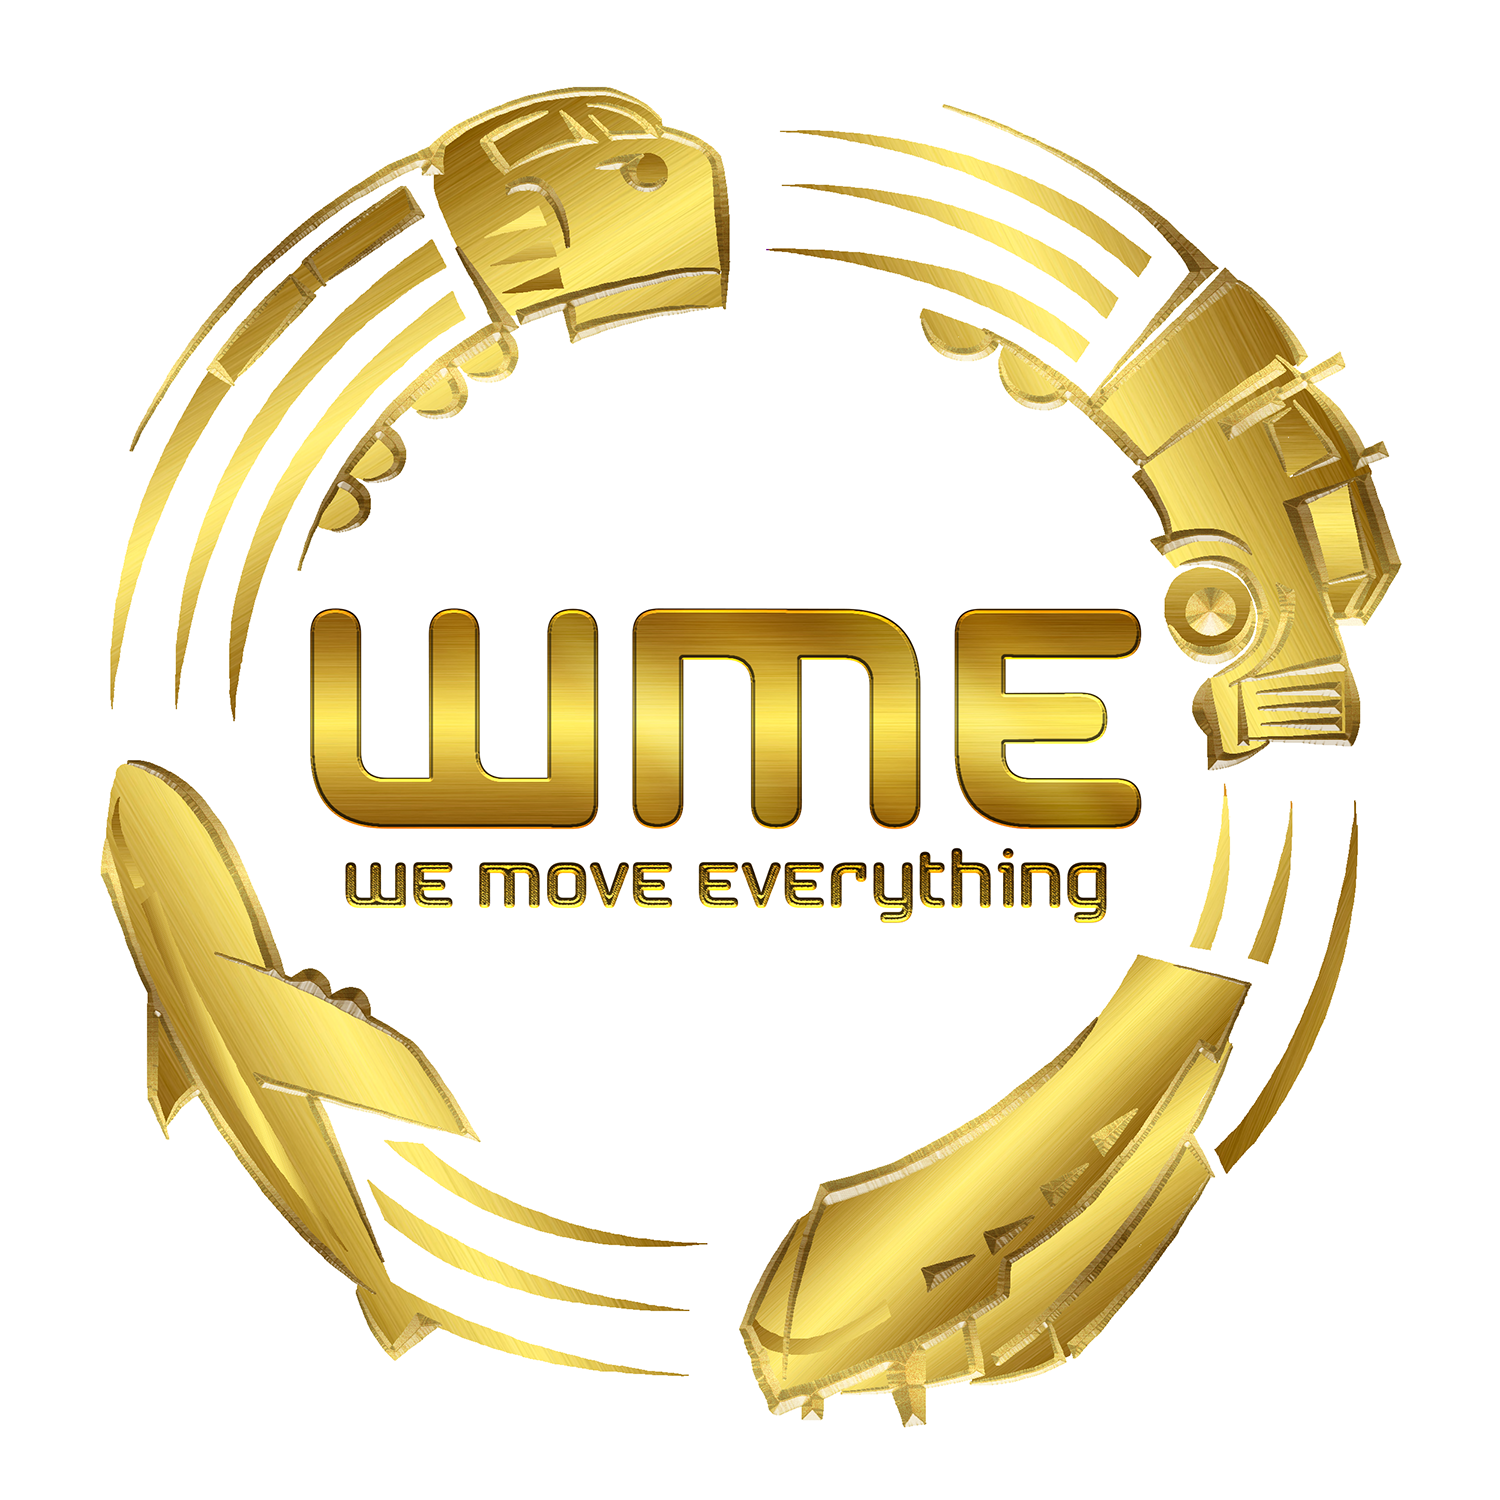 WME (We Move Everything)